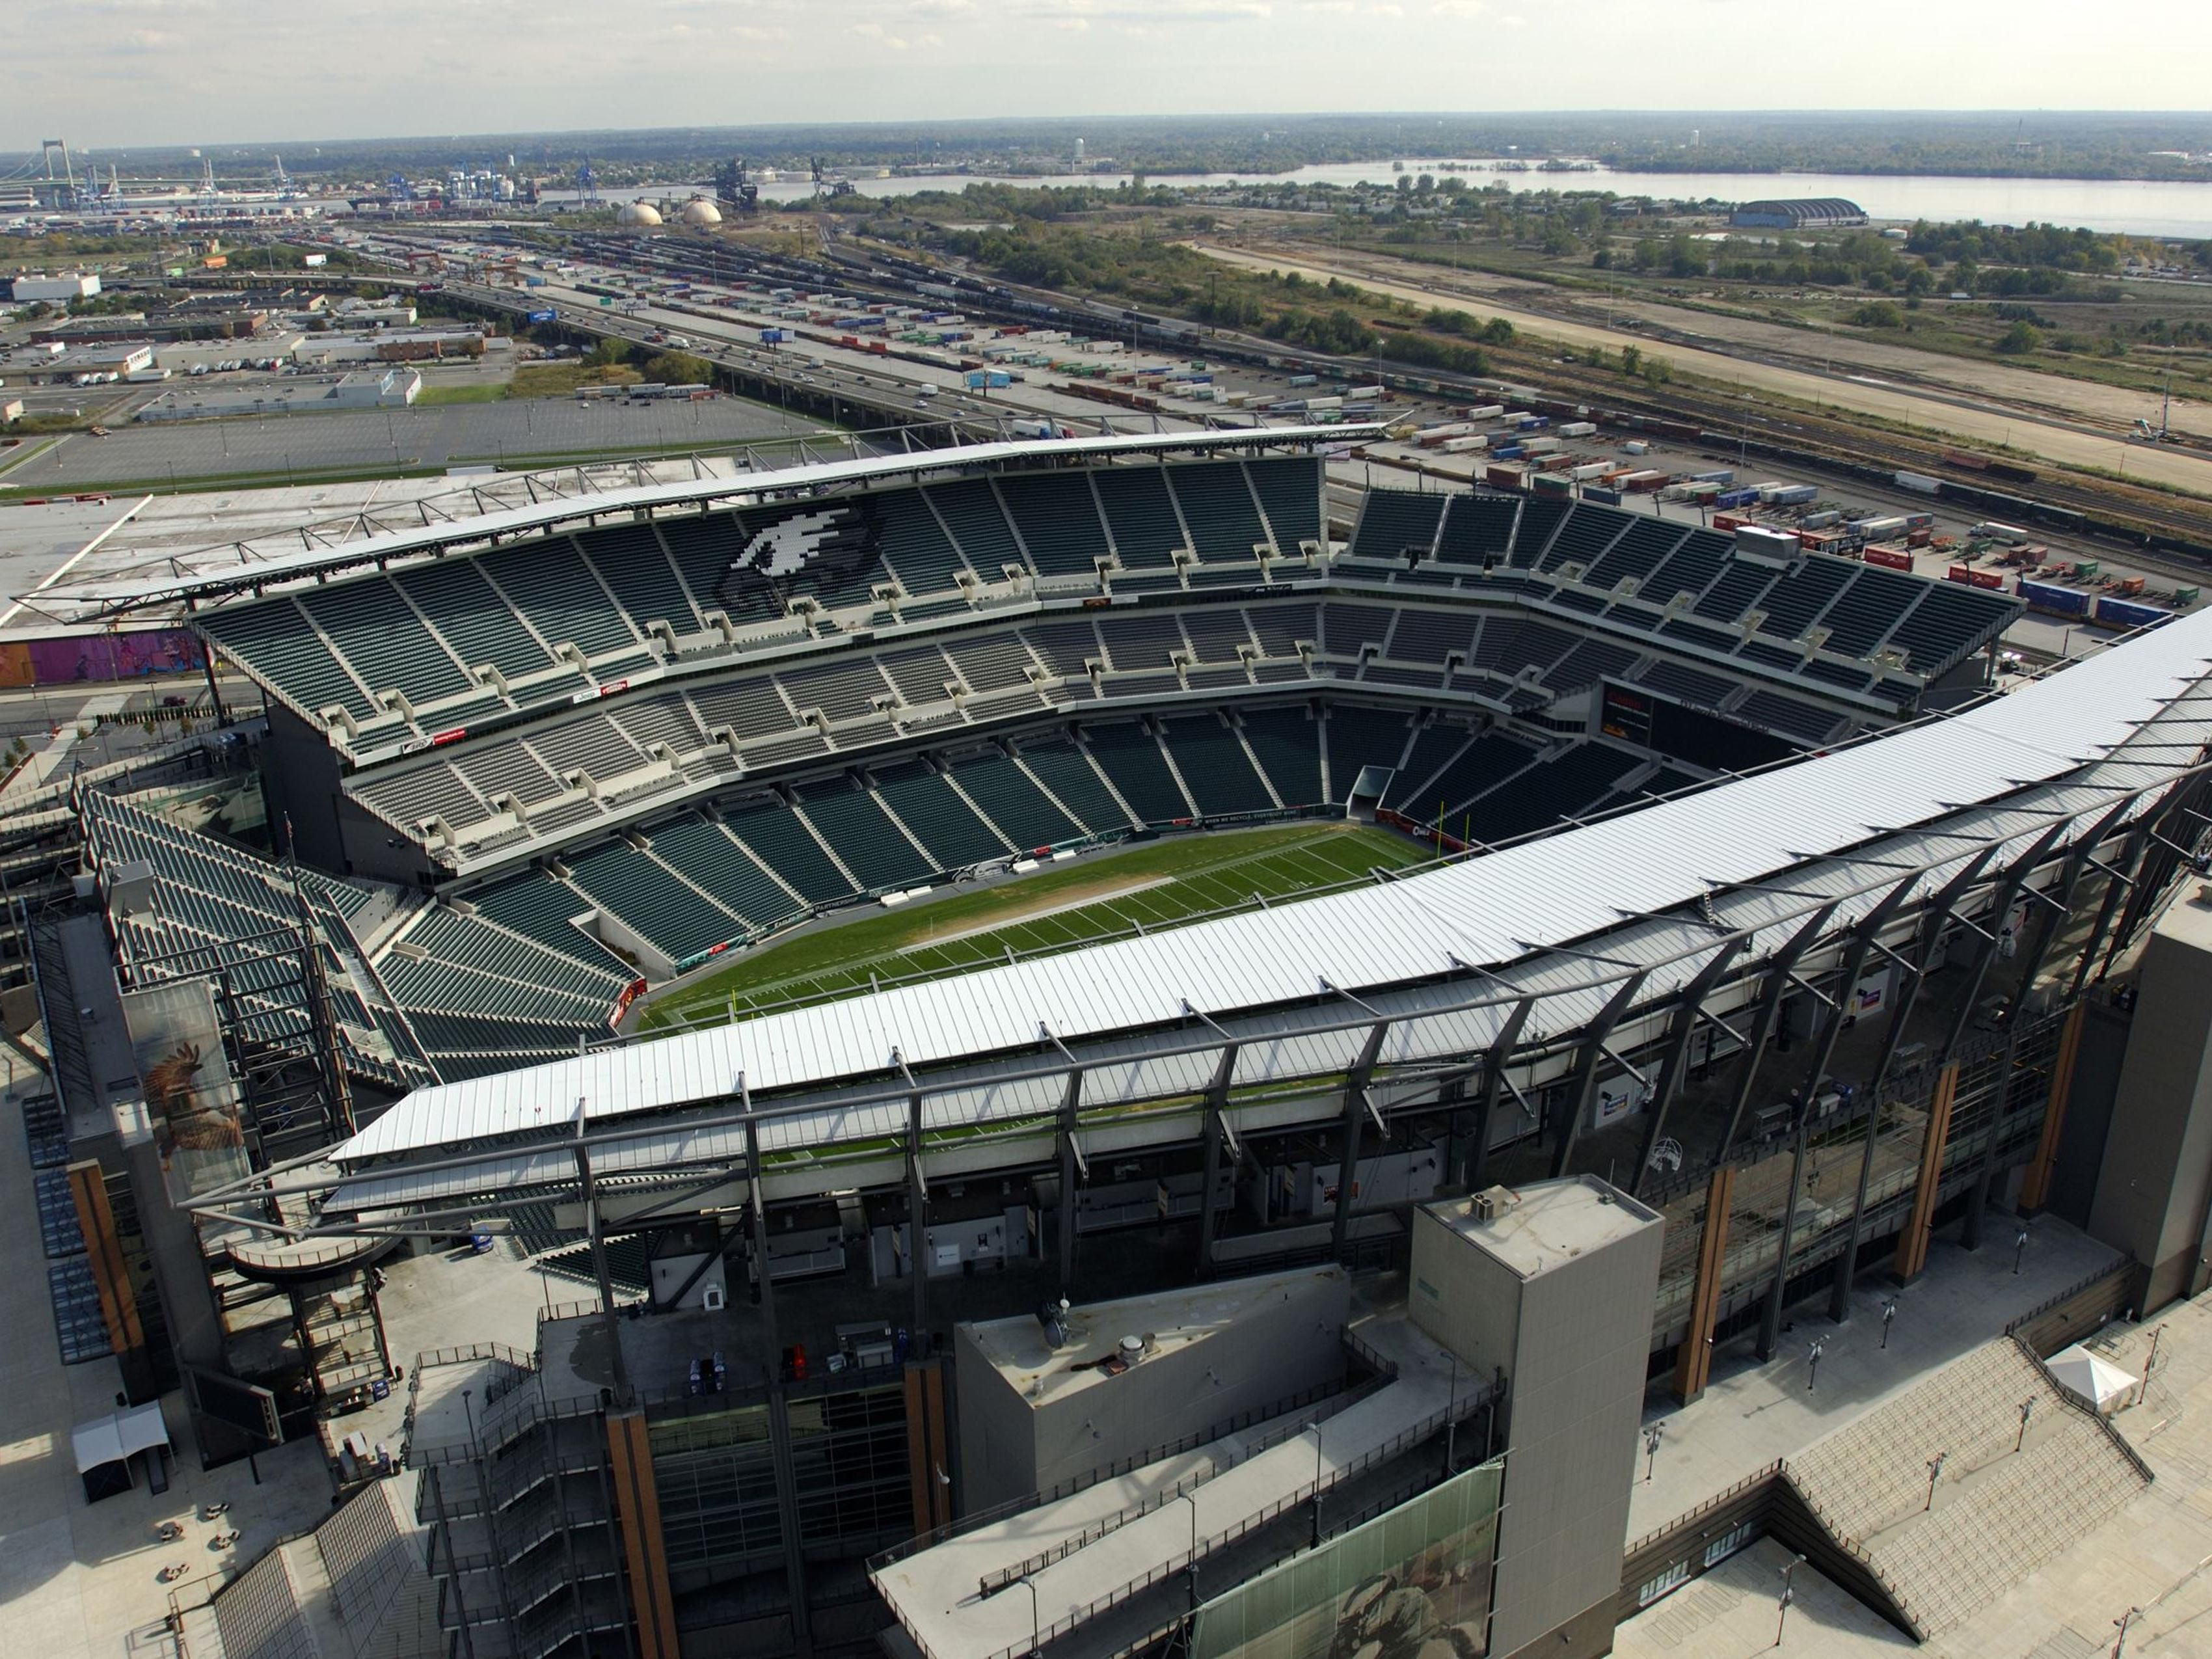 Lincoln Financial Field-recommend taking the subway to the games.